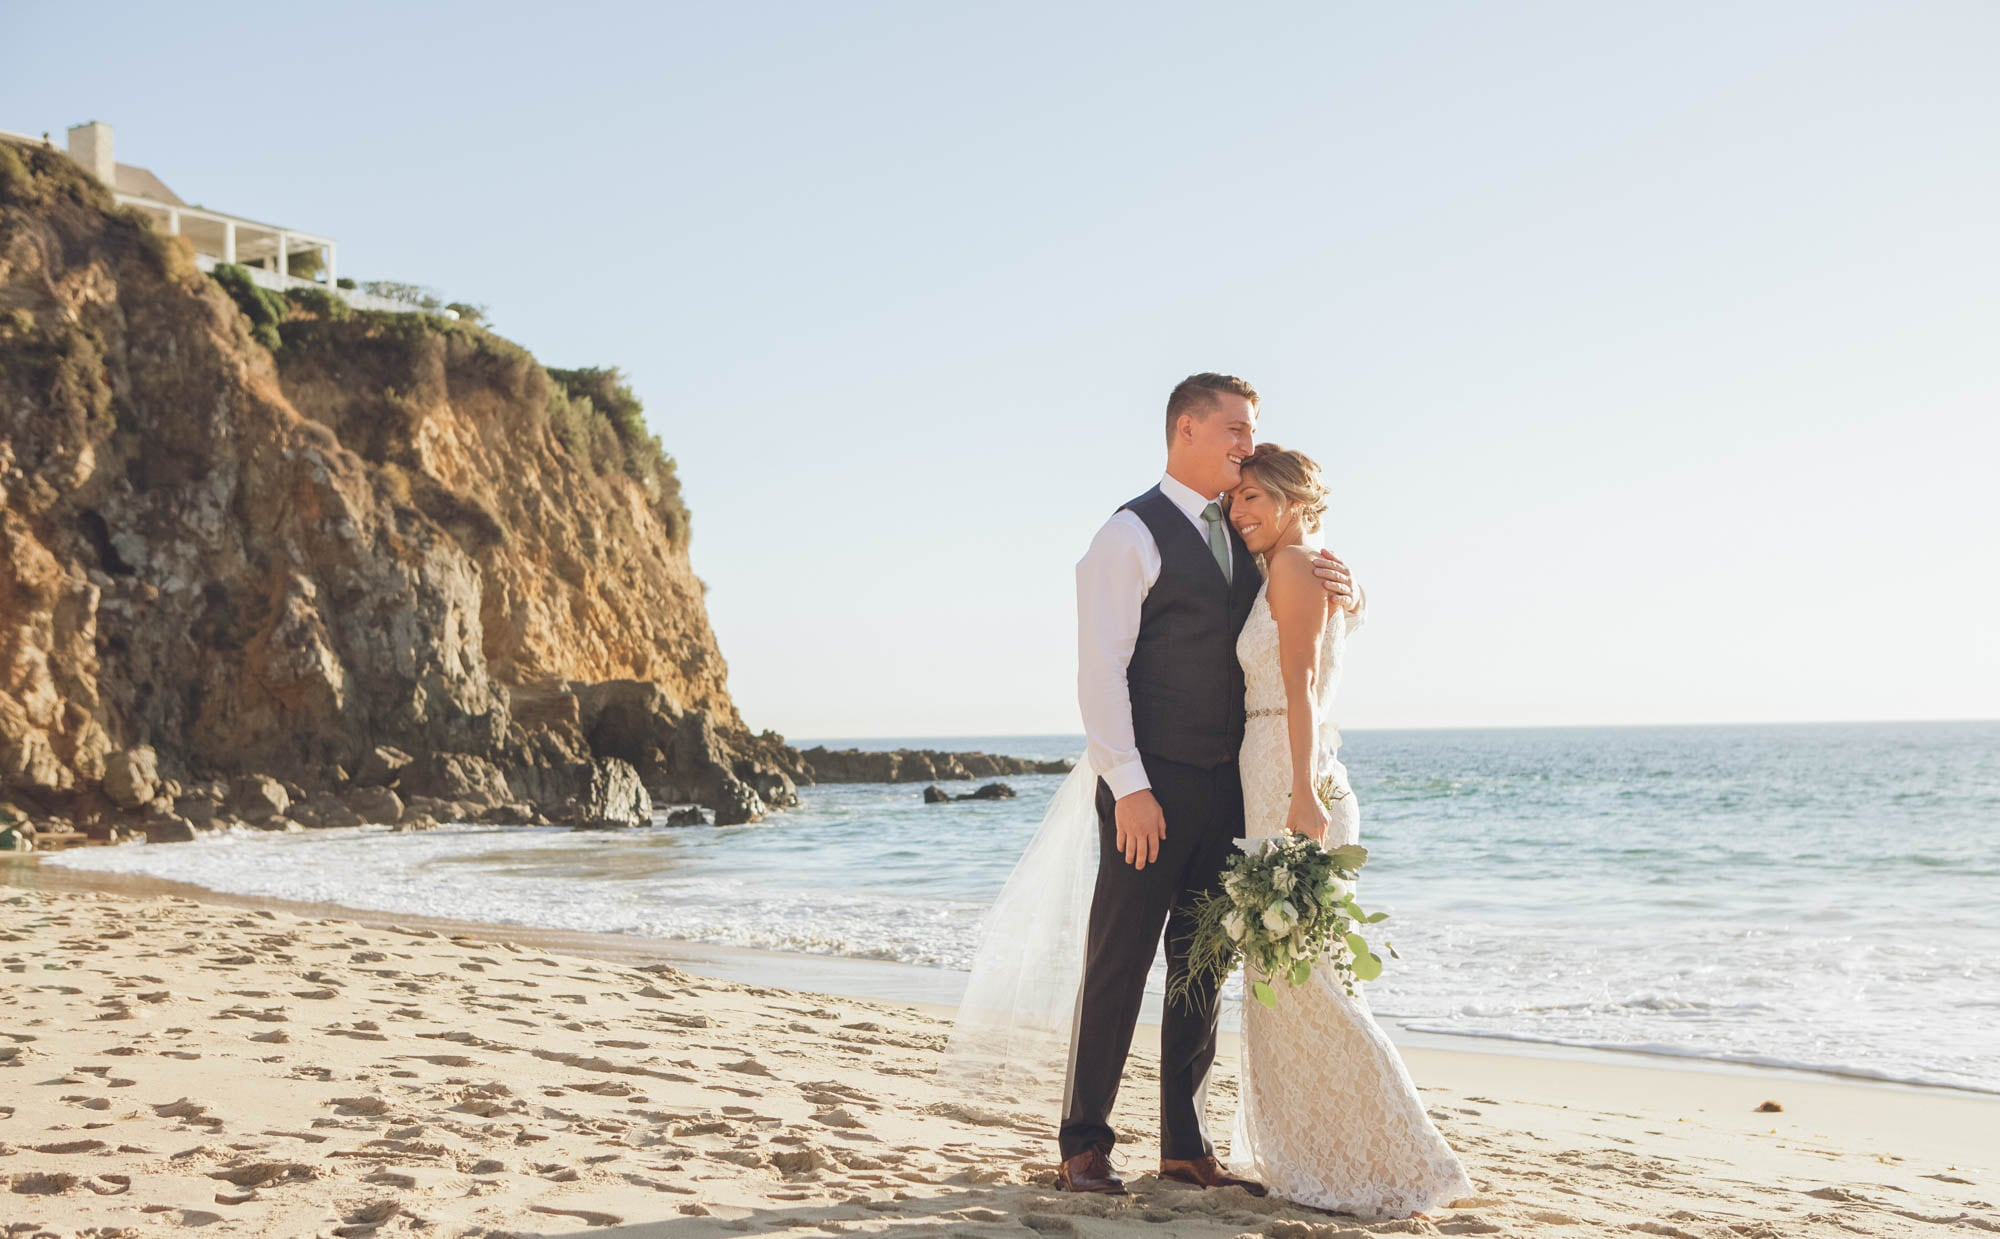 newlyweds in love on the beach, photographed by Eivan's in Los Angeles